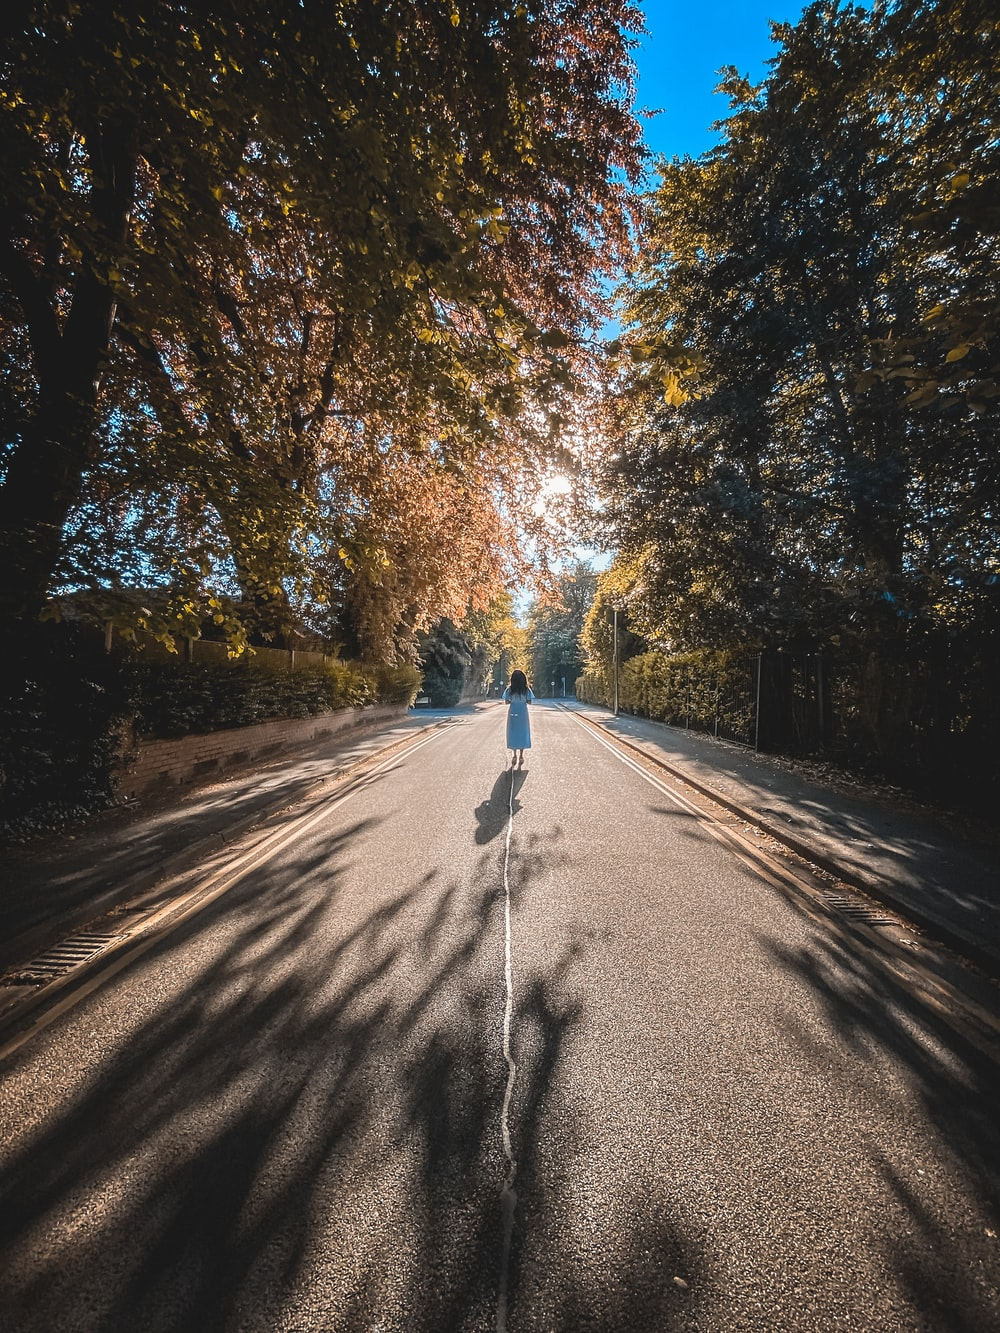 person walking on road between trees during daytime